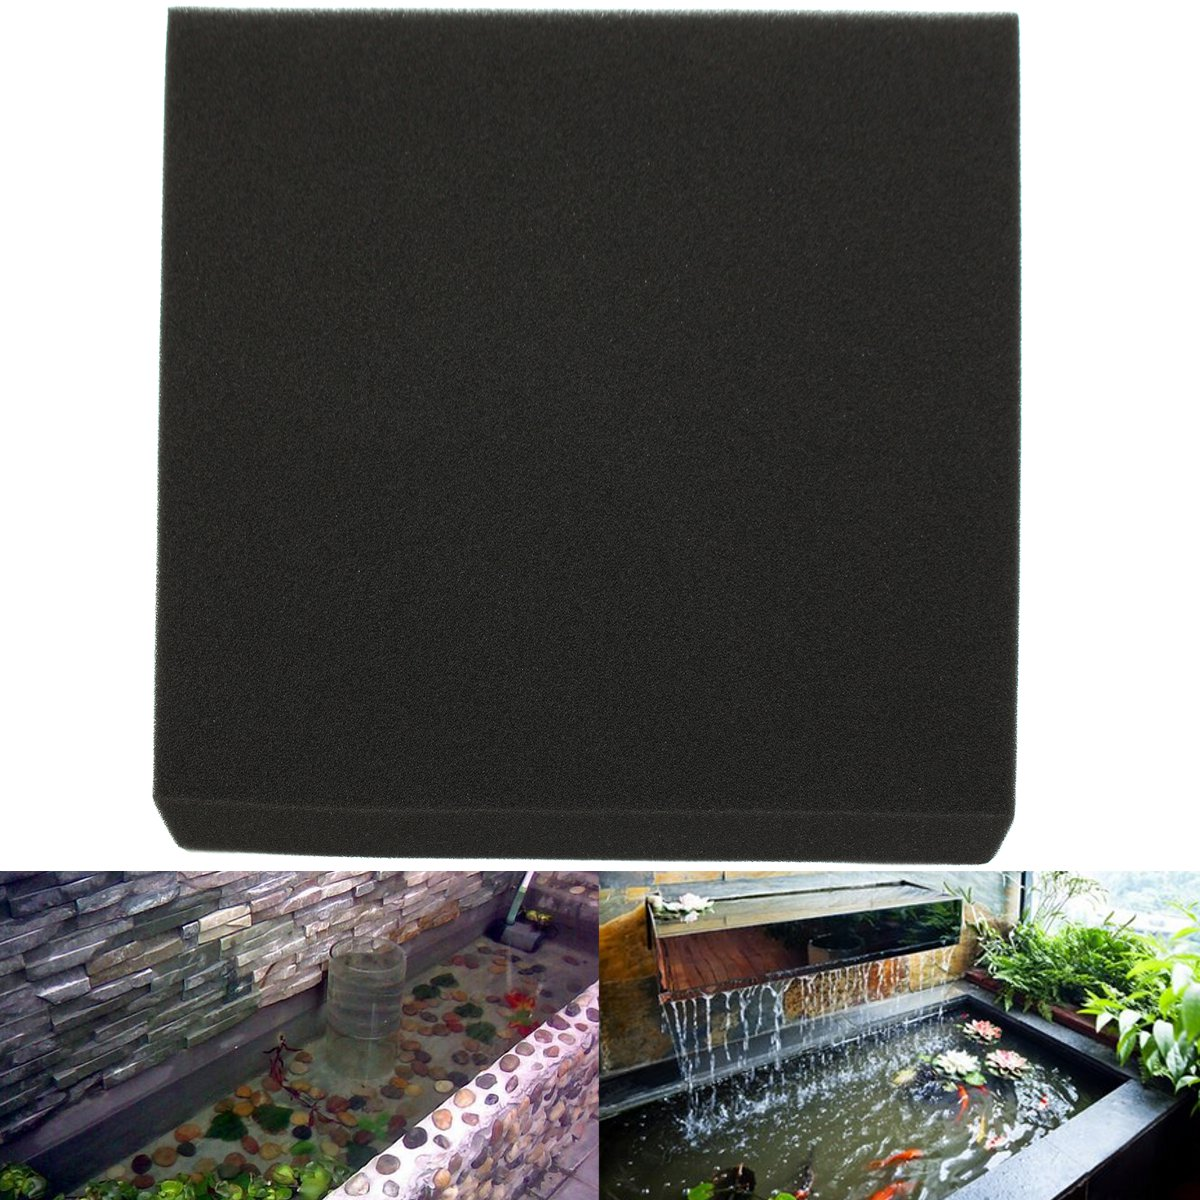 50x50x4cm Black Aquarium Biochemical Cotton Filter Foam Fish Tank Sponge Pads